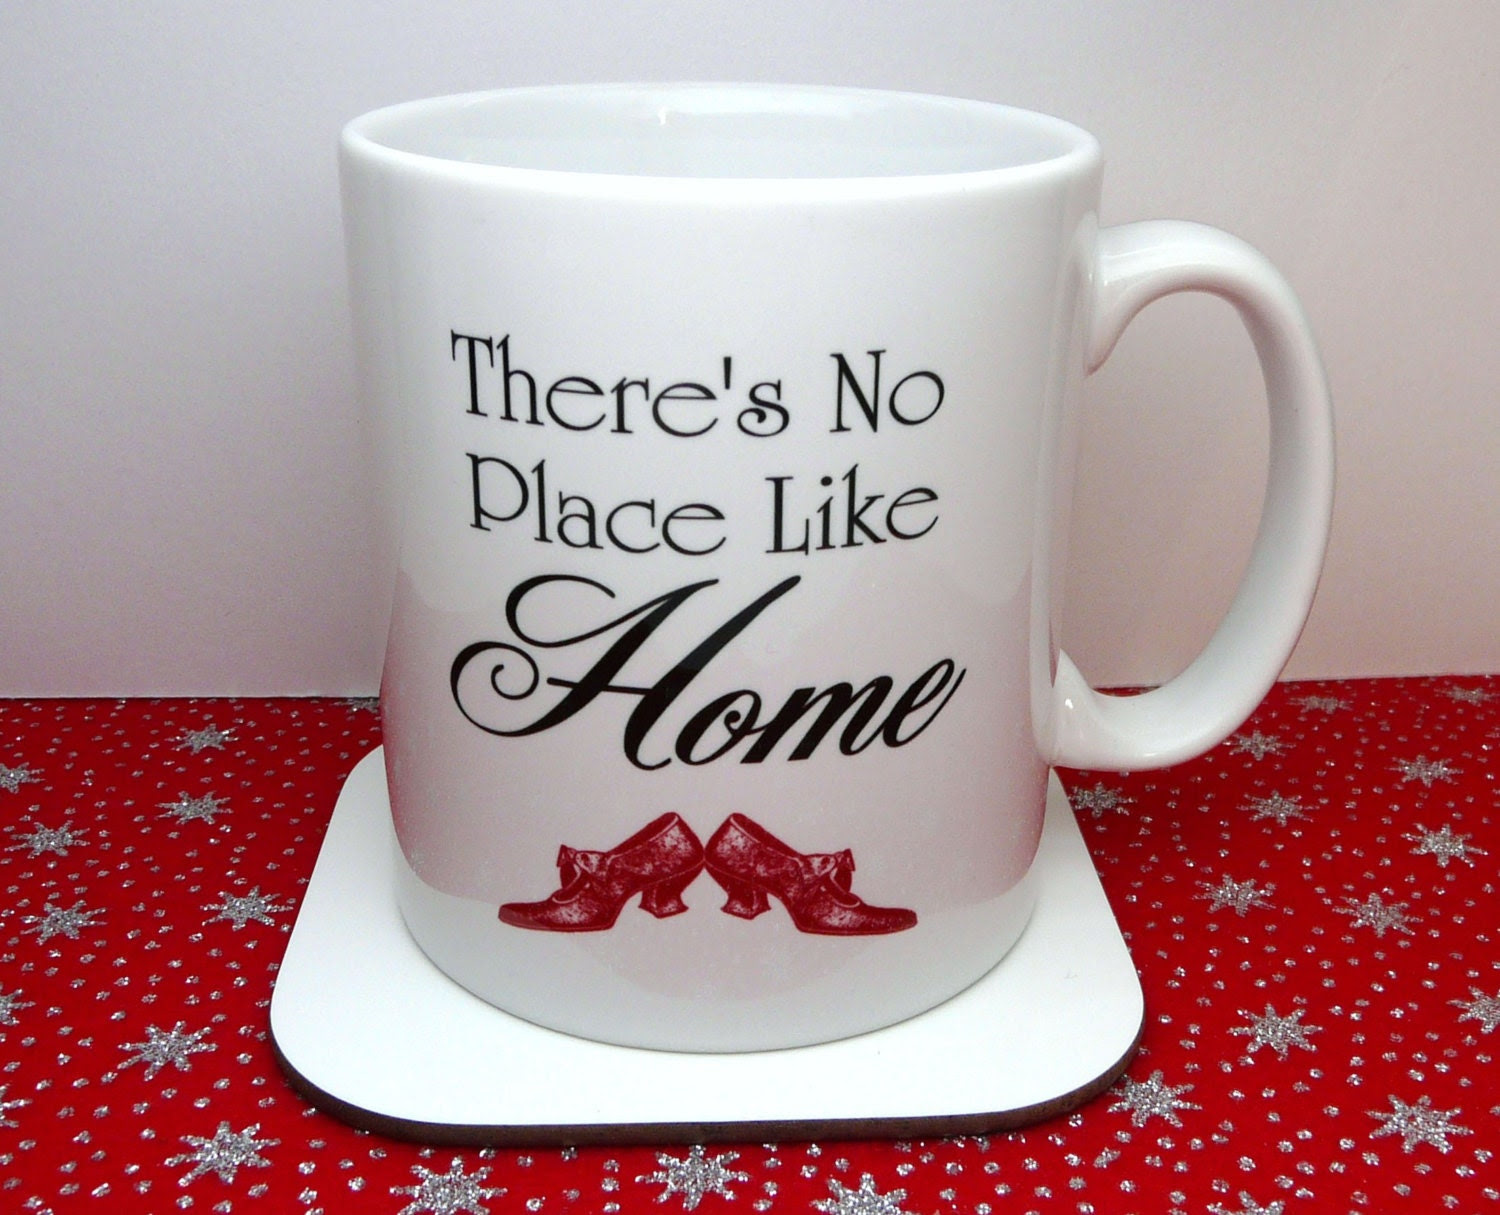 Wizard Of Oz Mug, There's No Place Like Home, Red Ruby slippers, Cup, UK - missbohemia